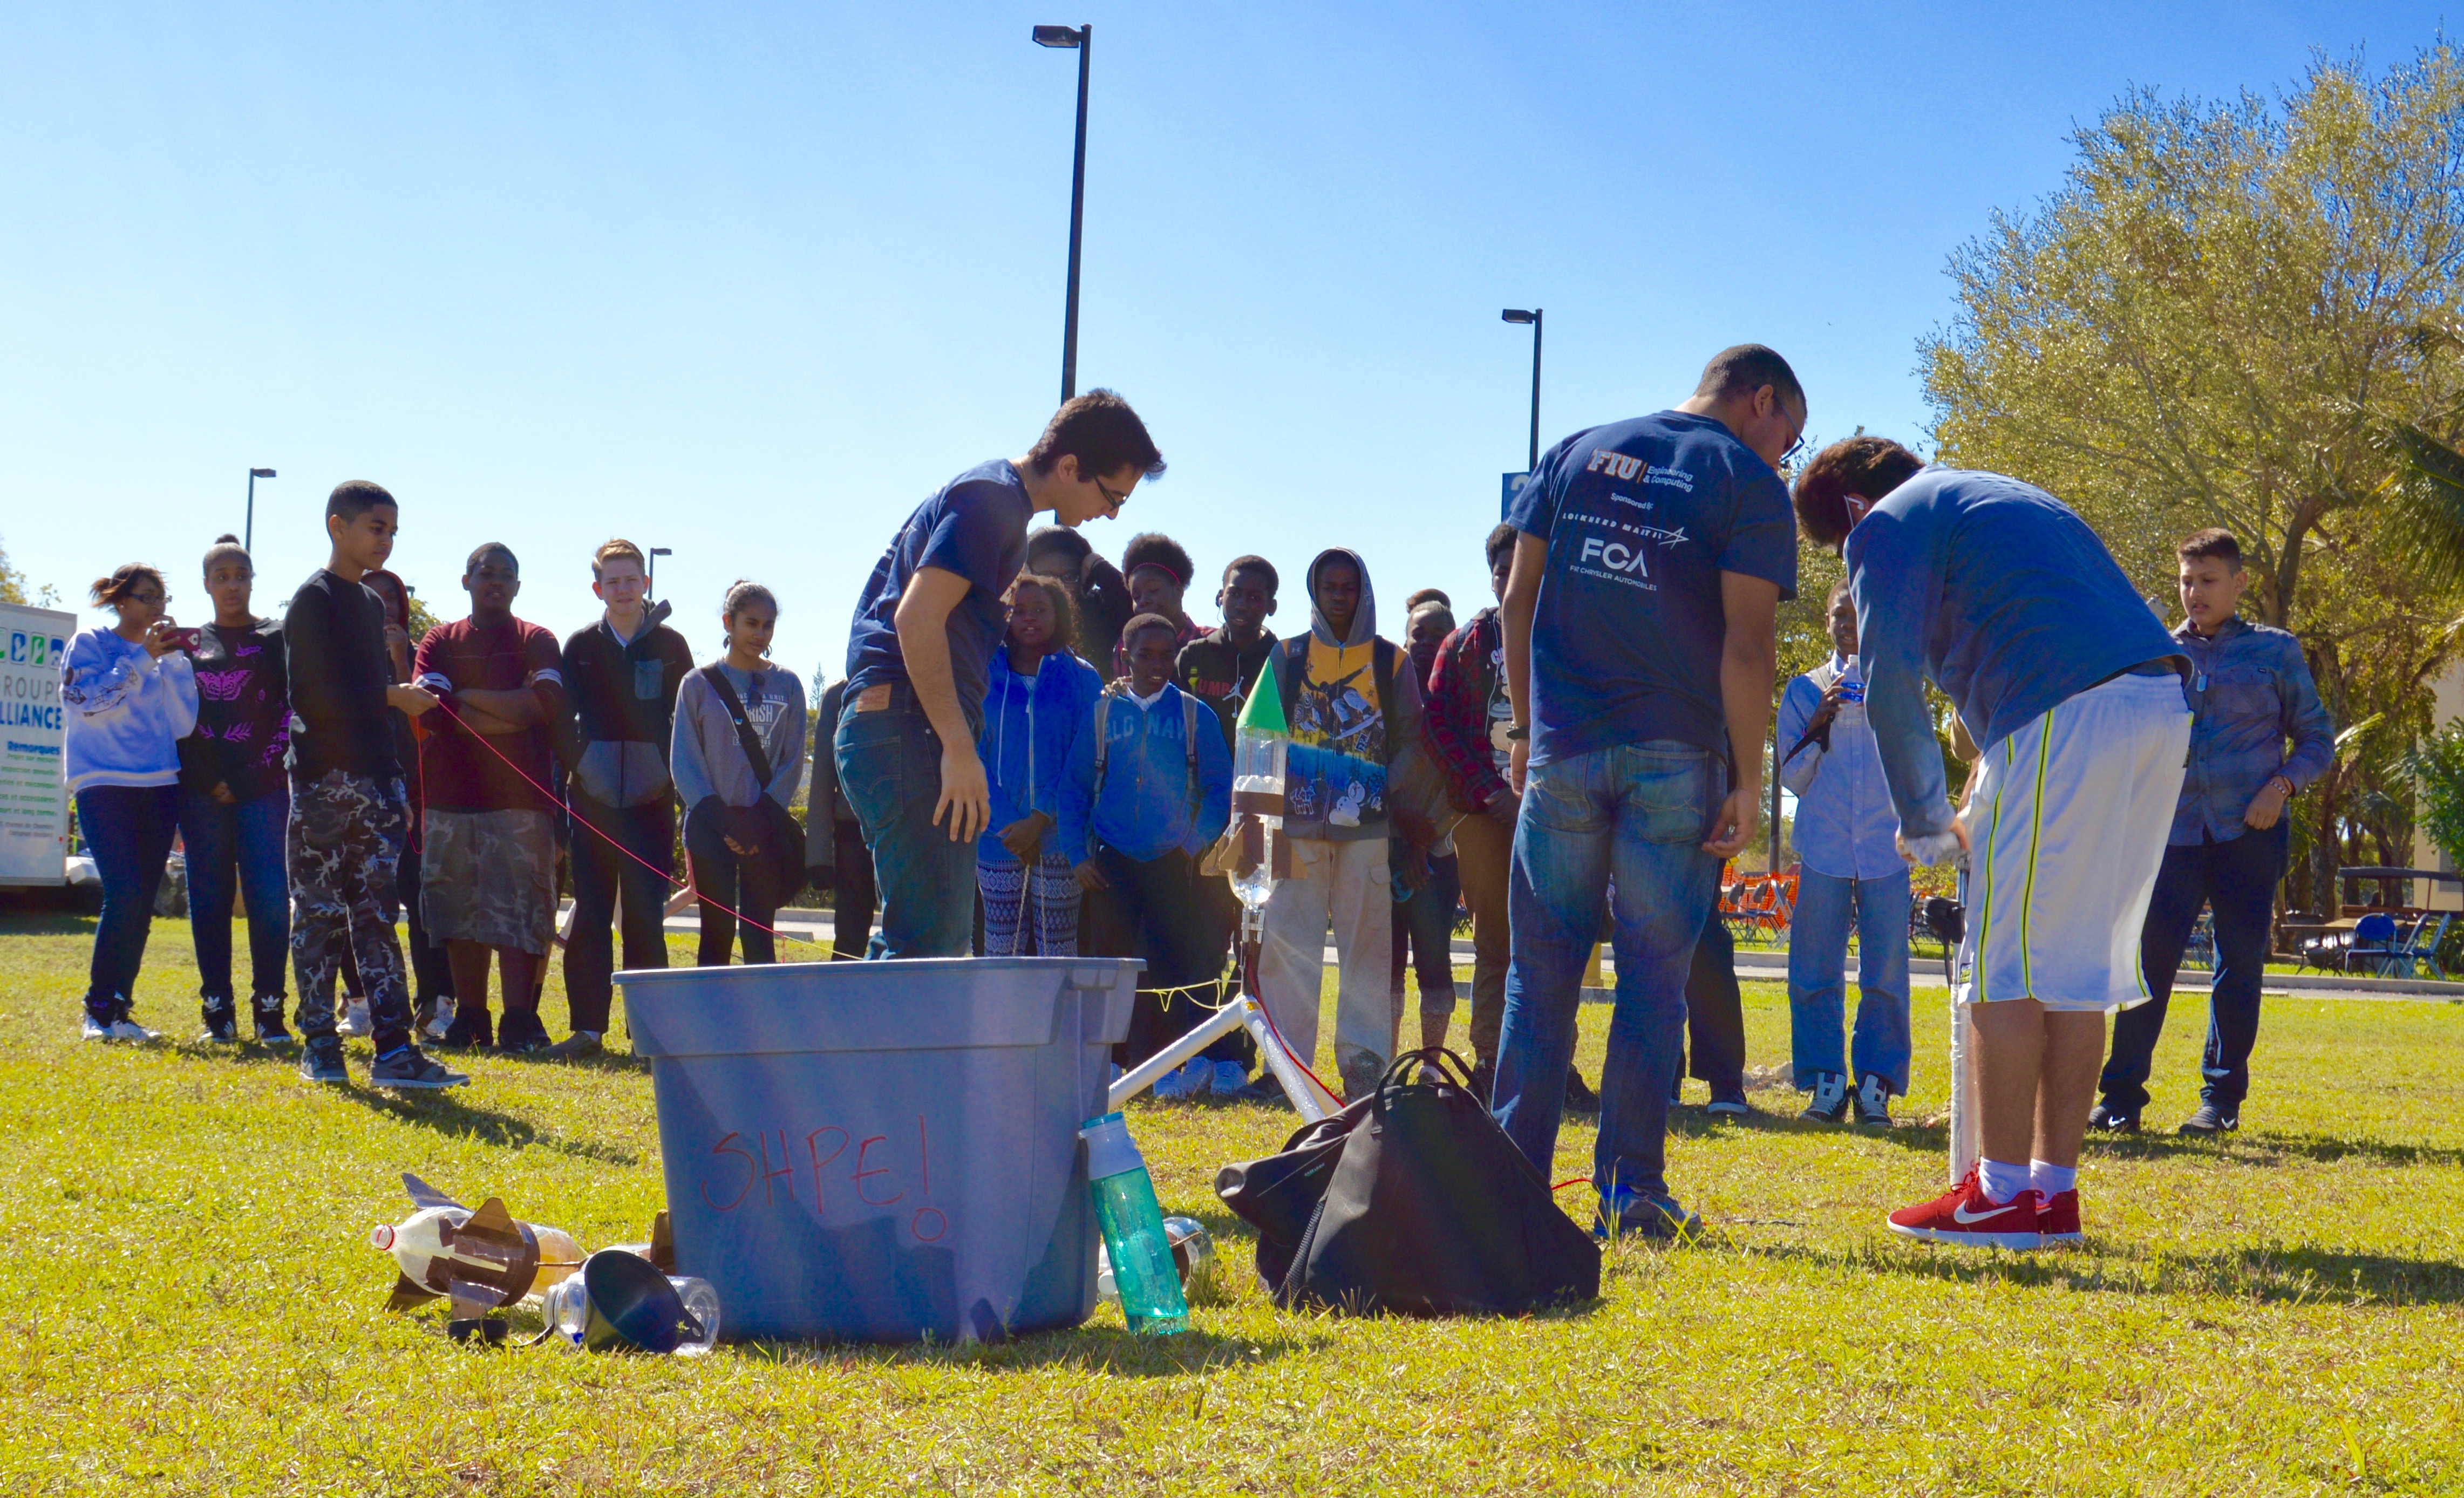 Educational fun takes center stage at 2016 Engineering Expo